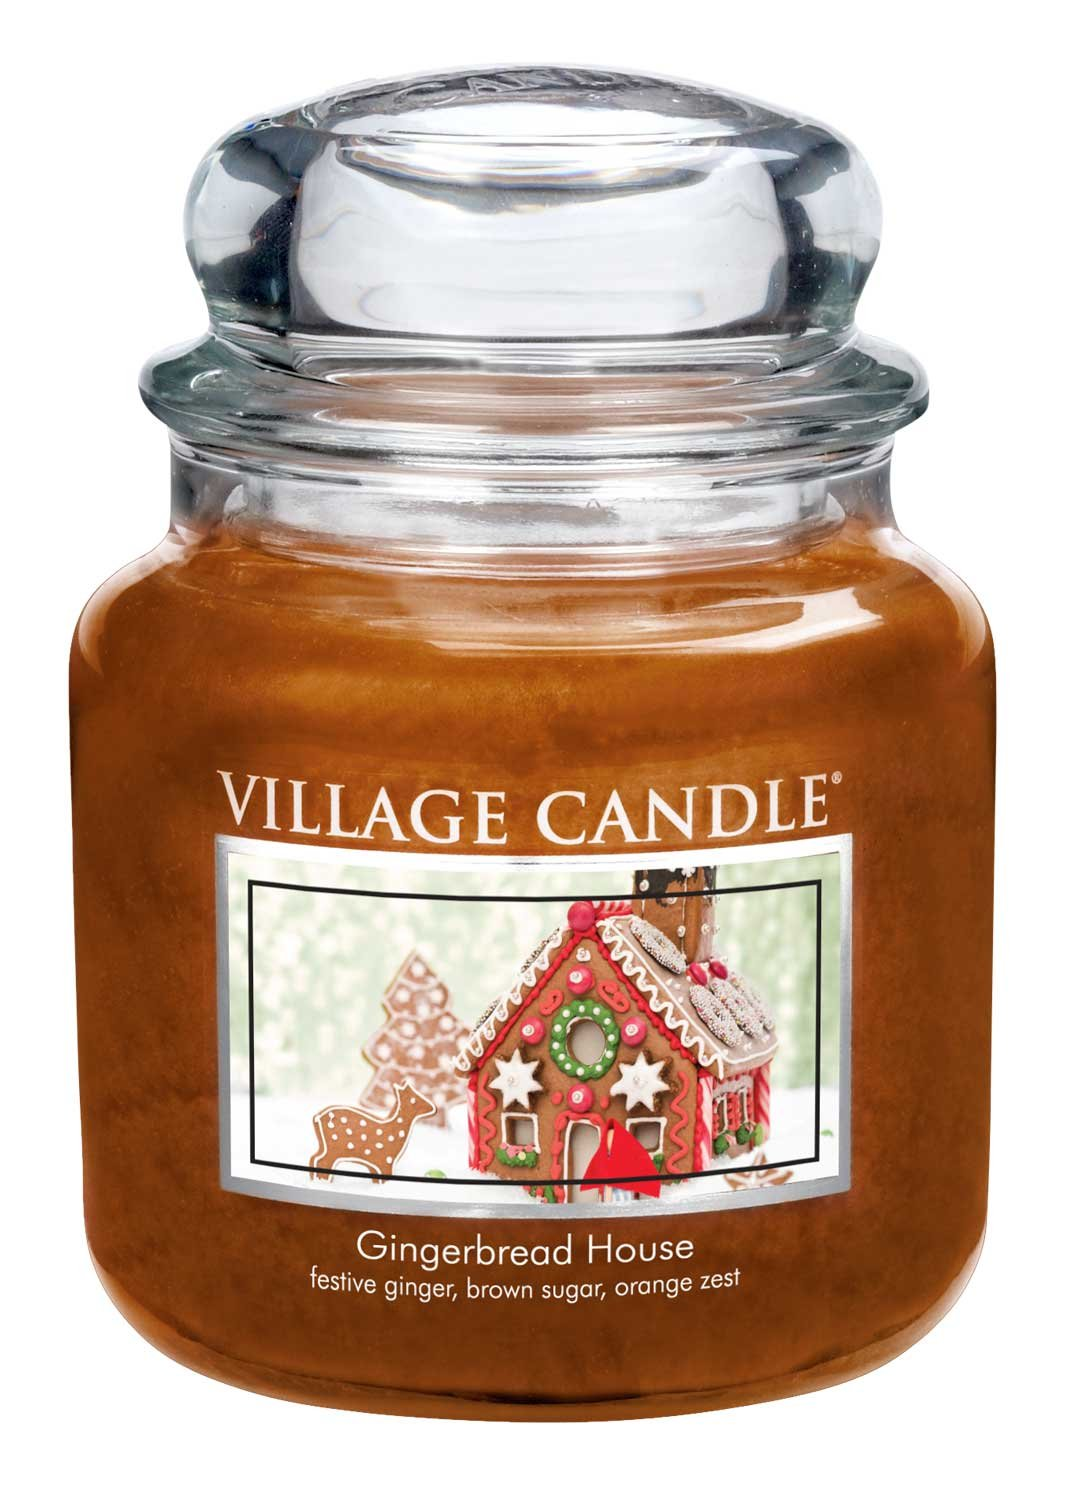 Village Candle Gingerbread House 11 oz Glass Jar Scented Candle, Small 106011832